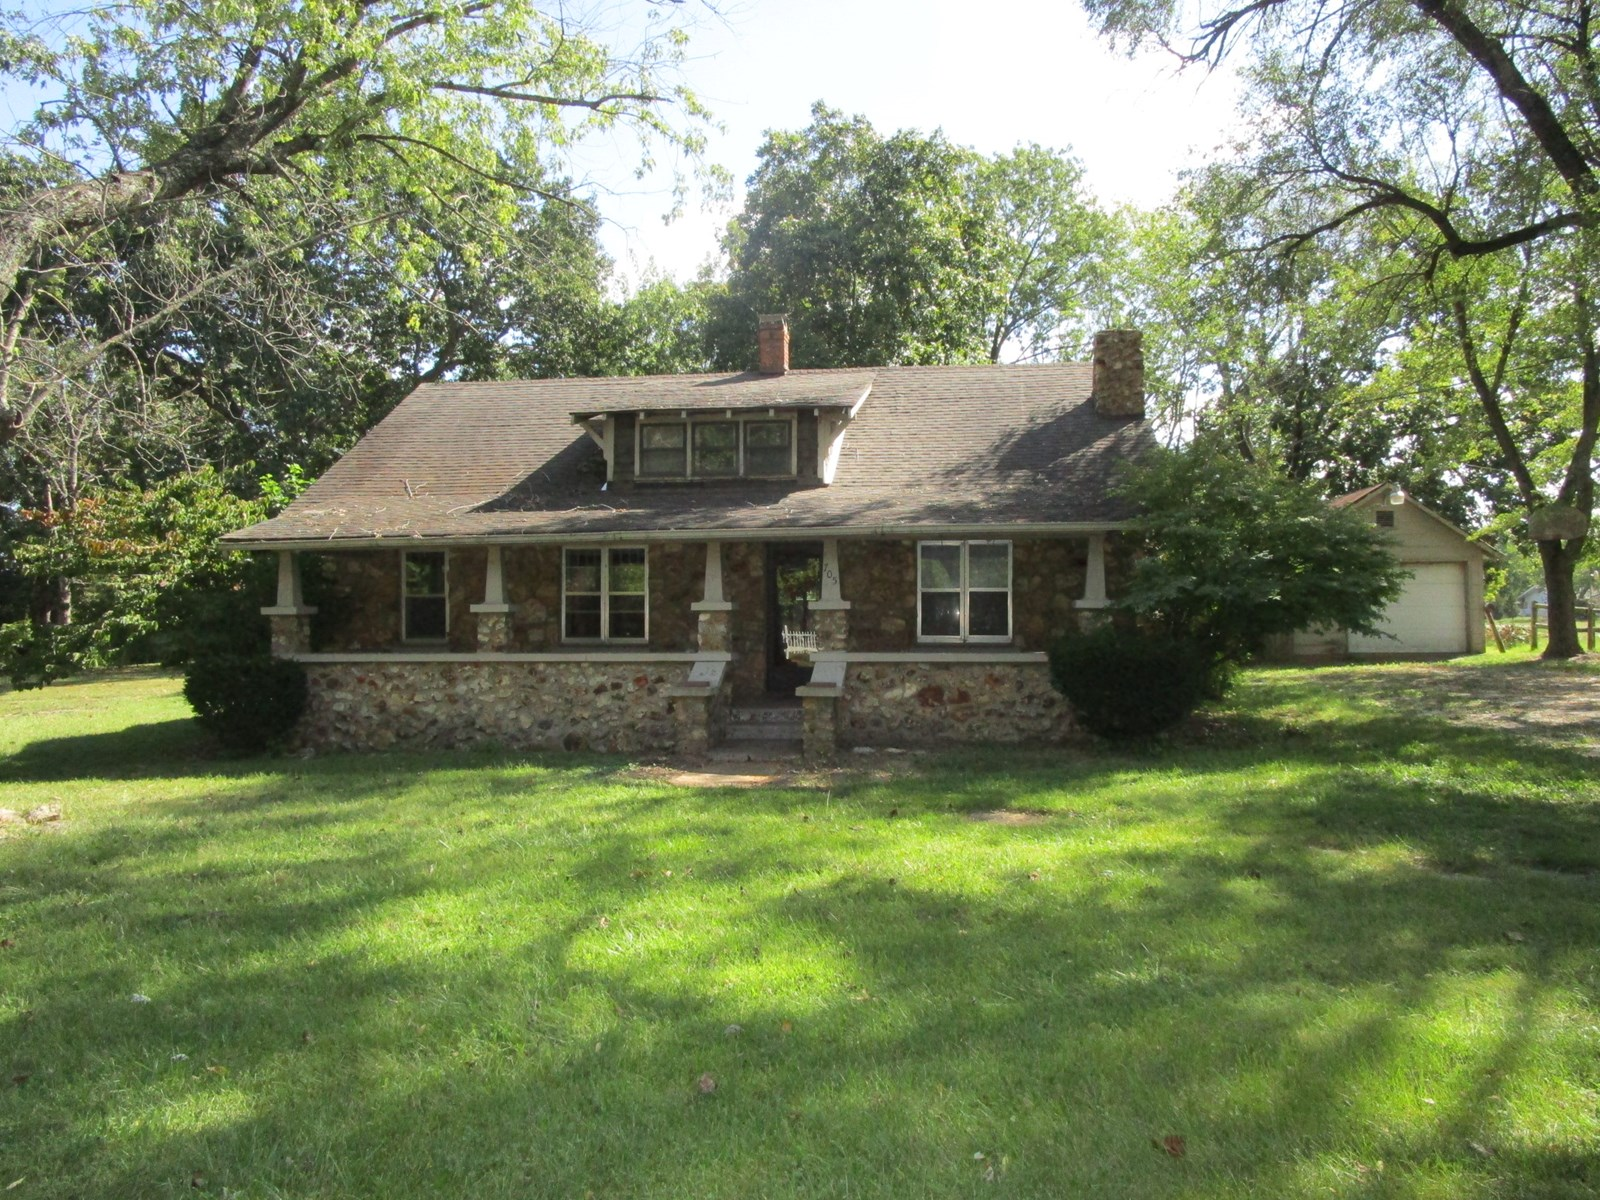 Stone Craftsman-Style Cottage For Sale in Southern Missouri